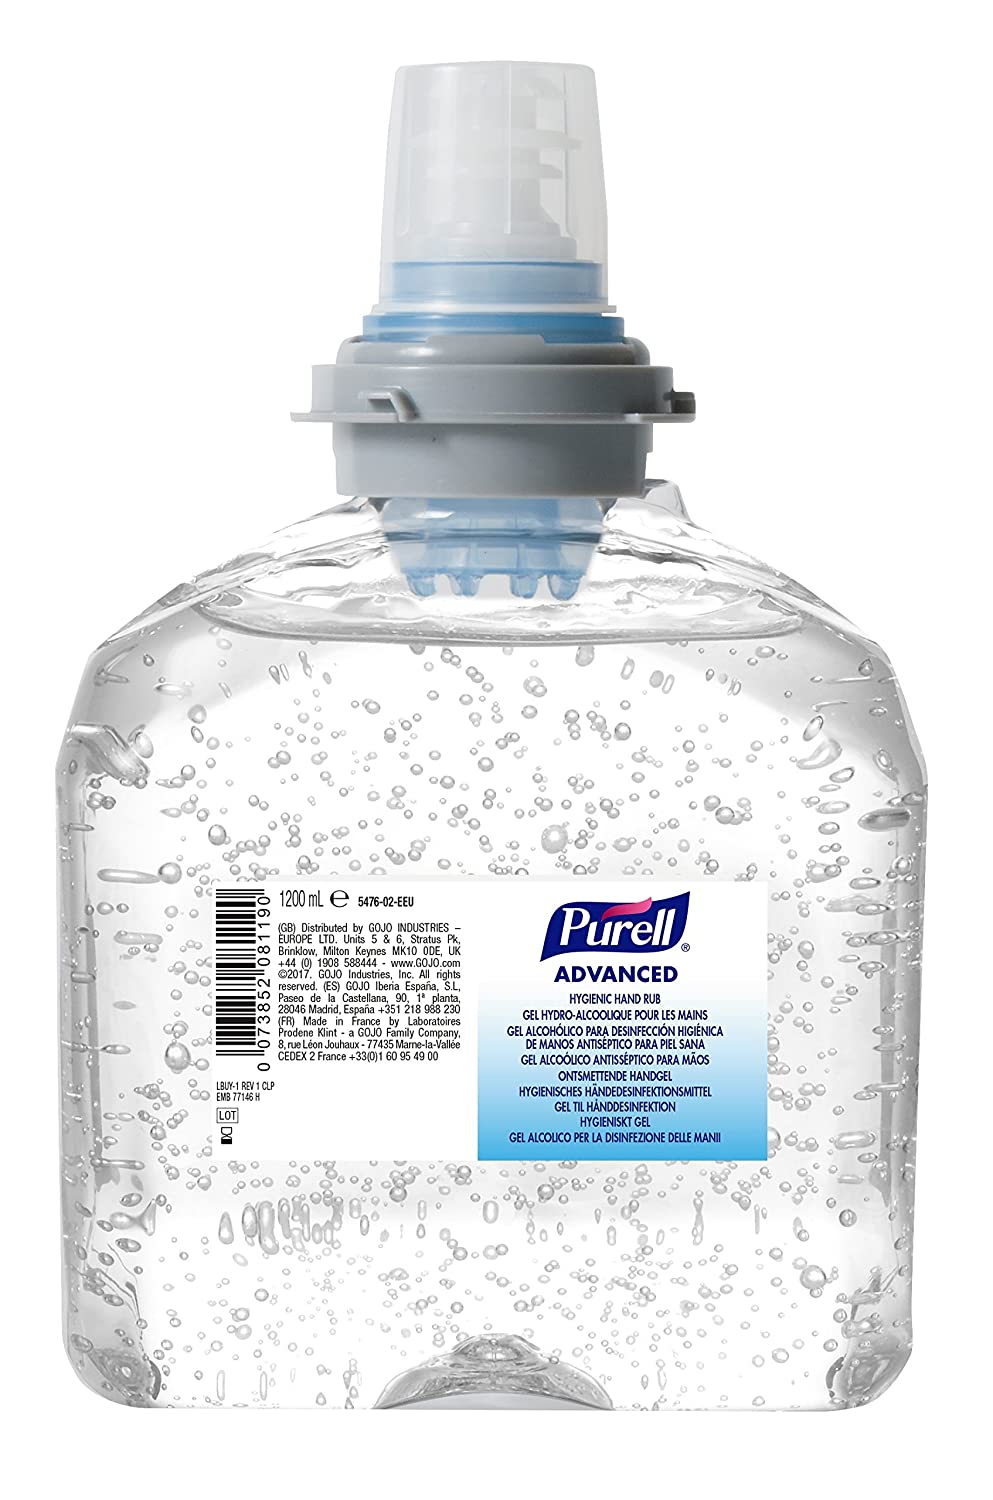 Purell Advanced Hygienic Hand Rub, 1200ml Refill for GOJO/Purell TFX Dispenser Laboratoires Prodene Klint - a GOJO Family Company 5476-02-EEU